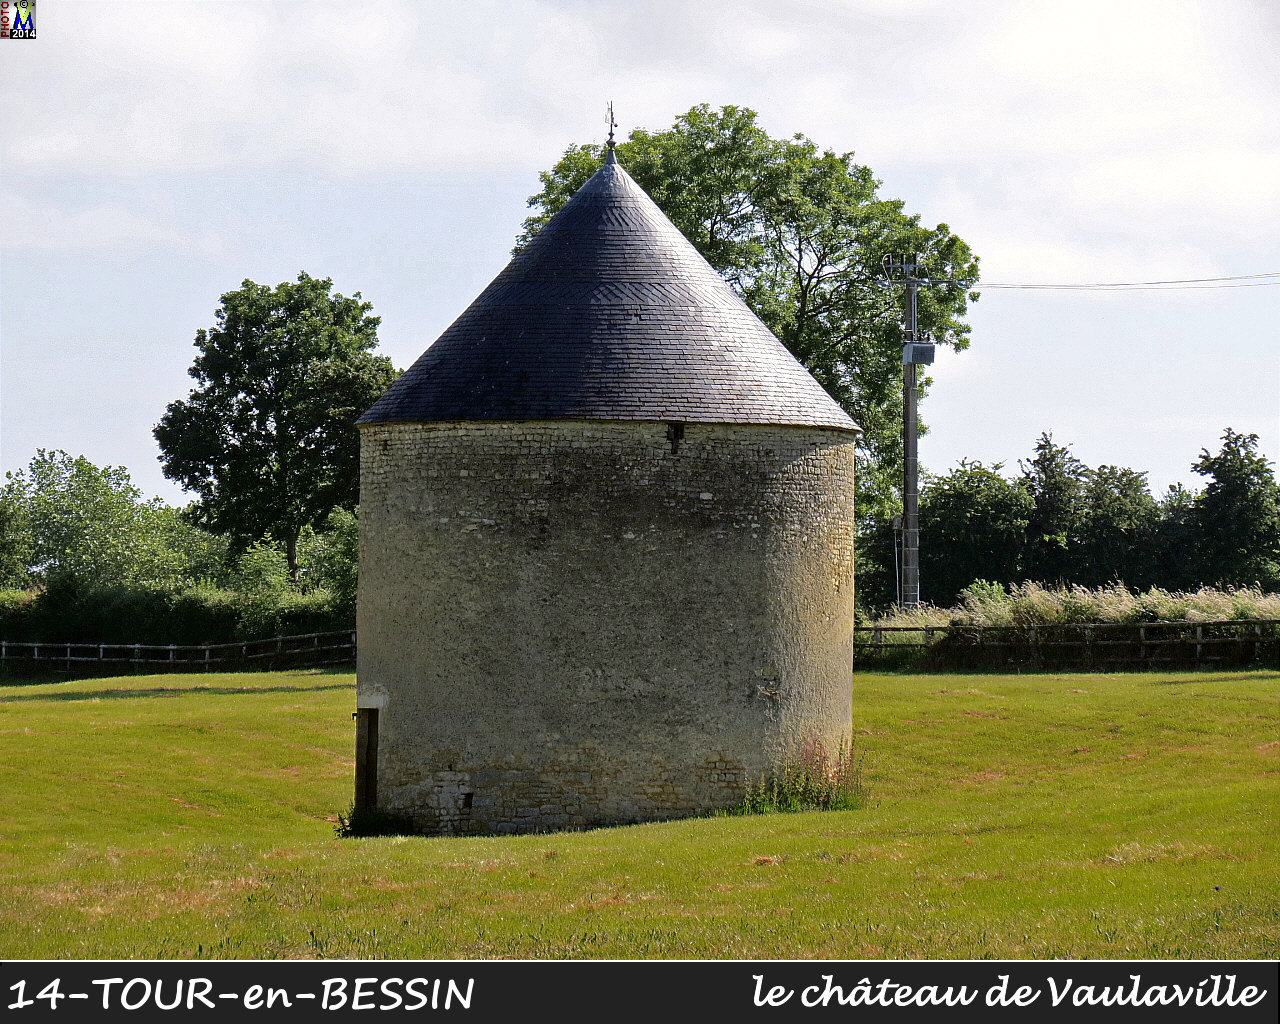 14TOUR-BESSIN_chateauV_180.jpg